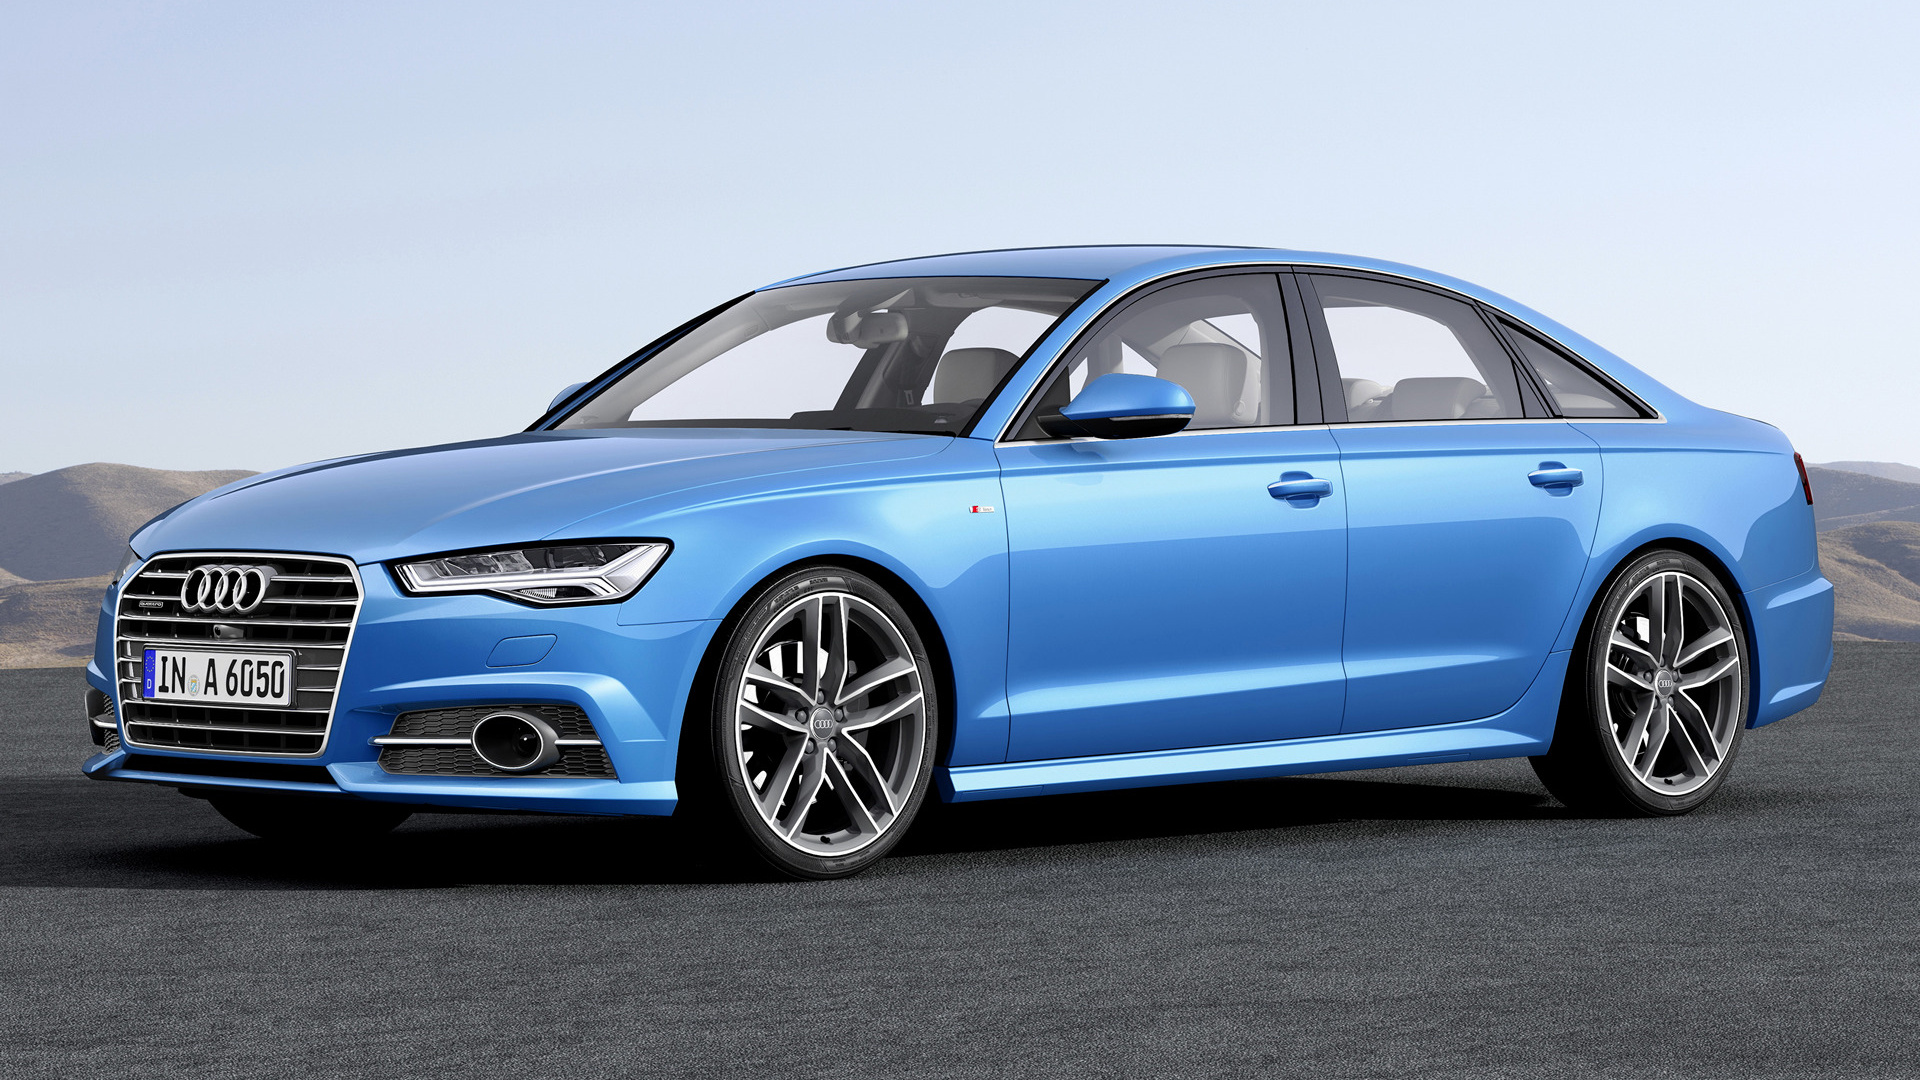 2014 Audi A6 Sedan S line - Wallpapers and HD Images   Car ...